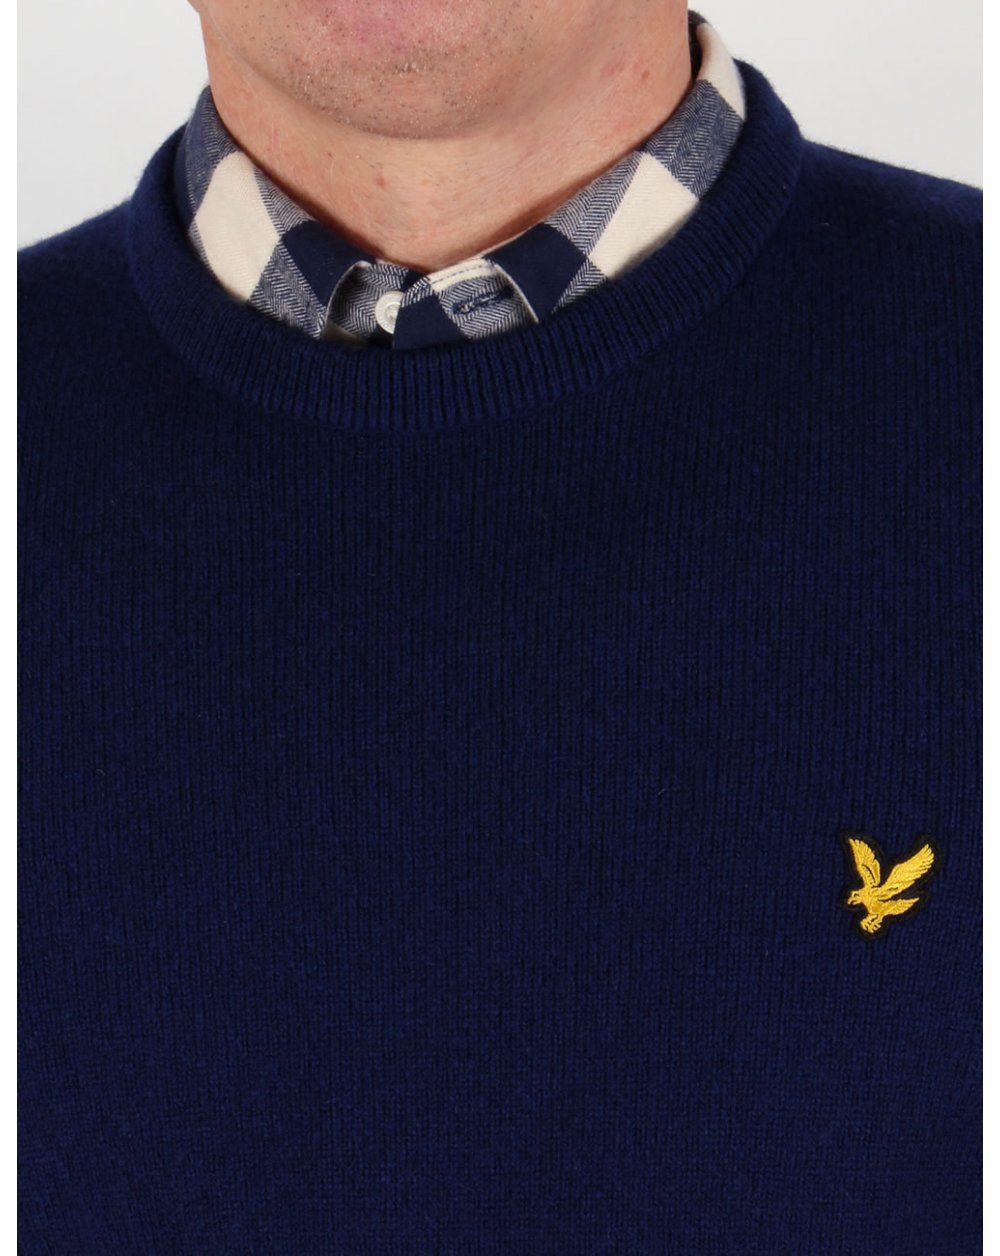 lyle and scott lambswool crew neck jumper navy sweater knit mens. Black Bedroom Furniture Sets. Home Design Ideas